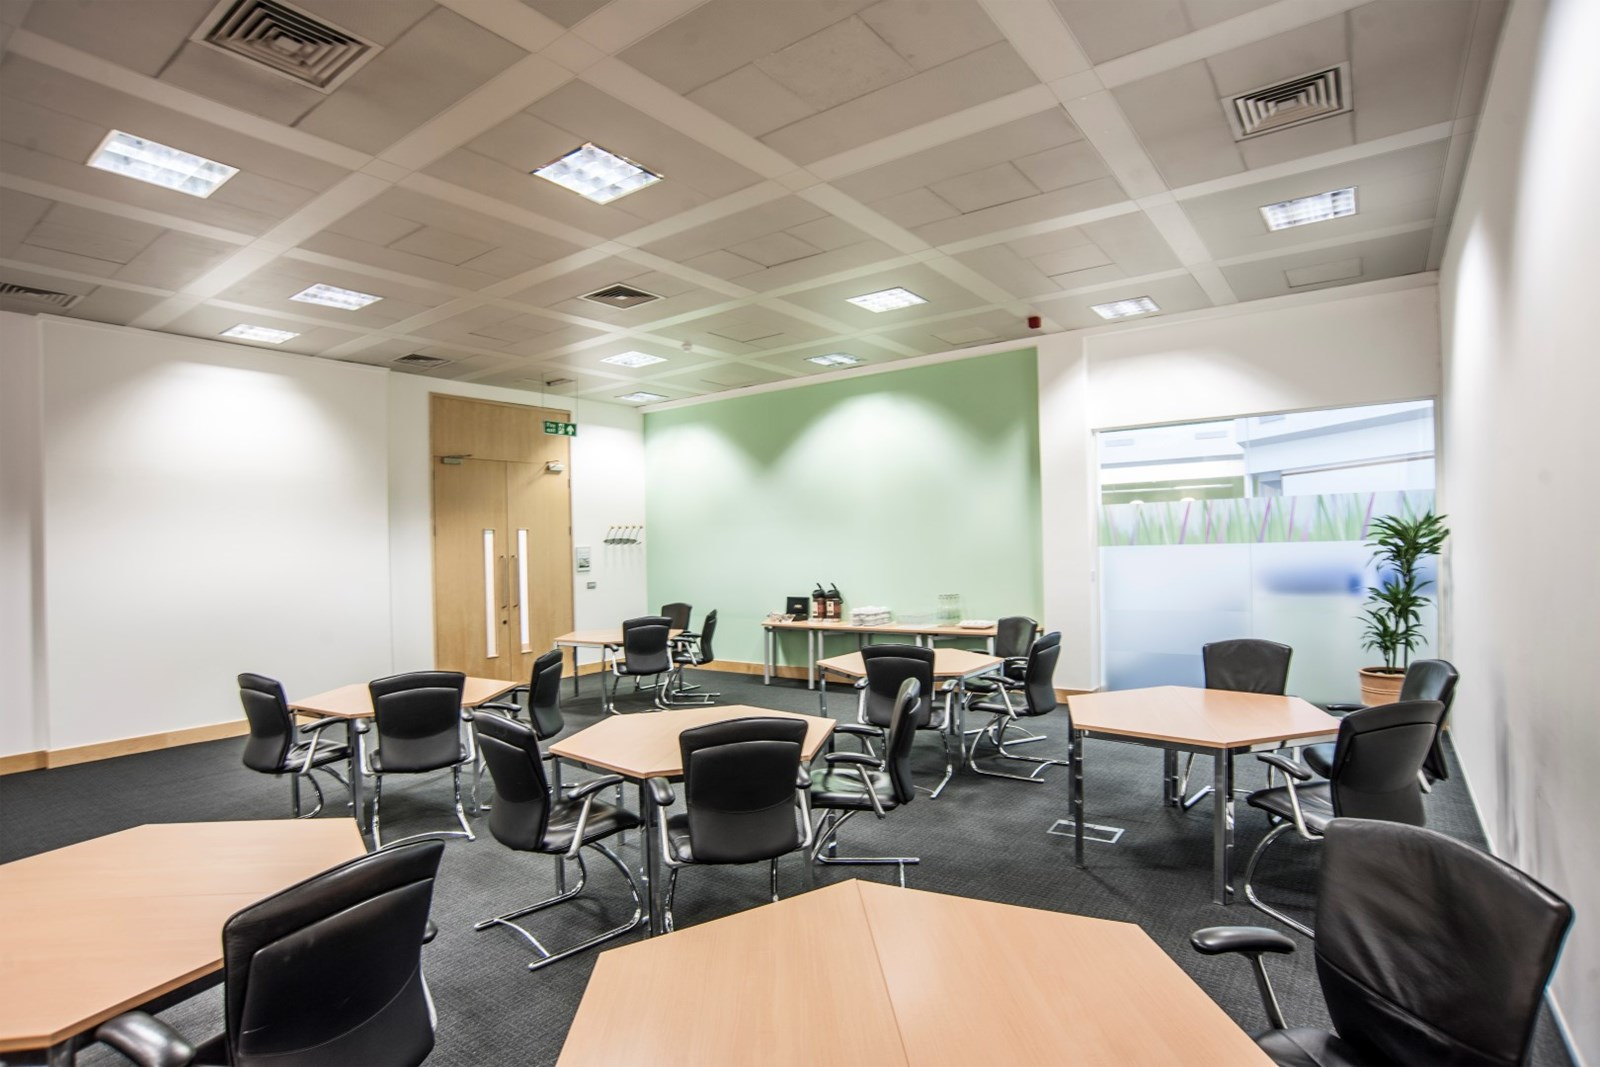 Heathrow Stockley Park